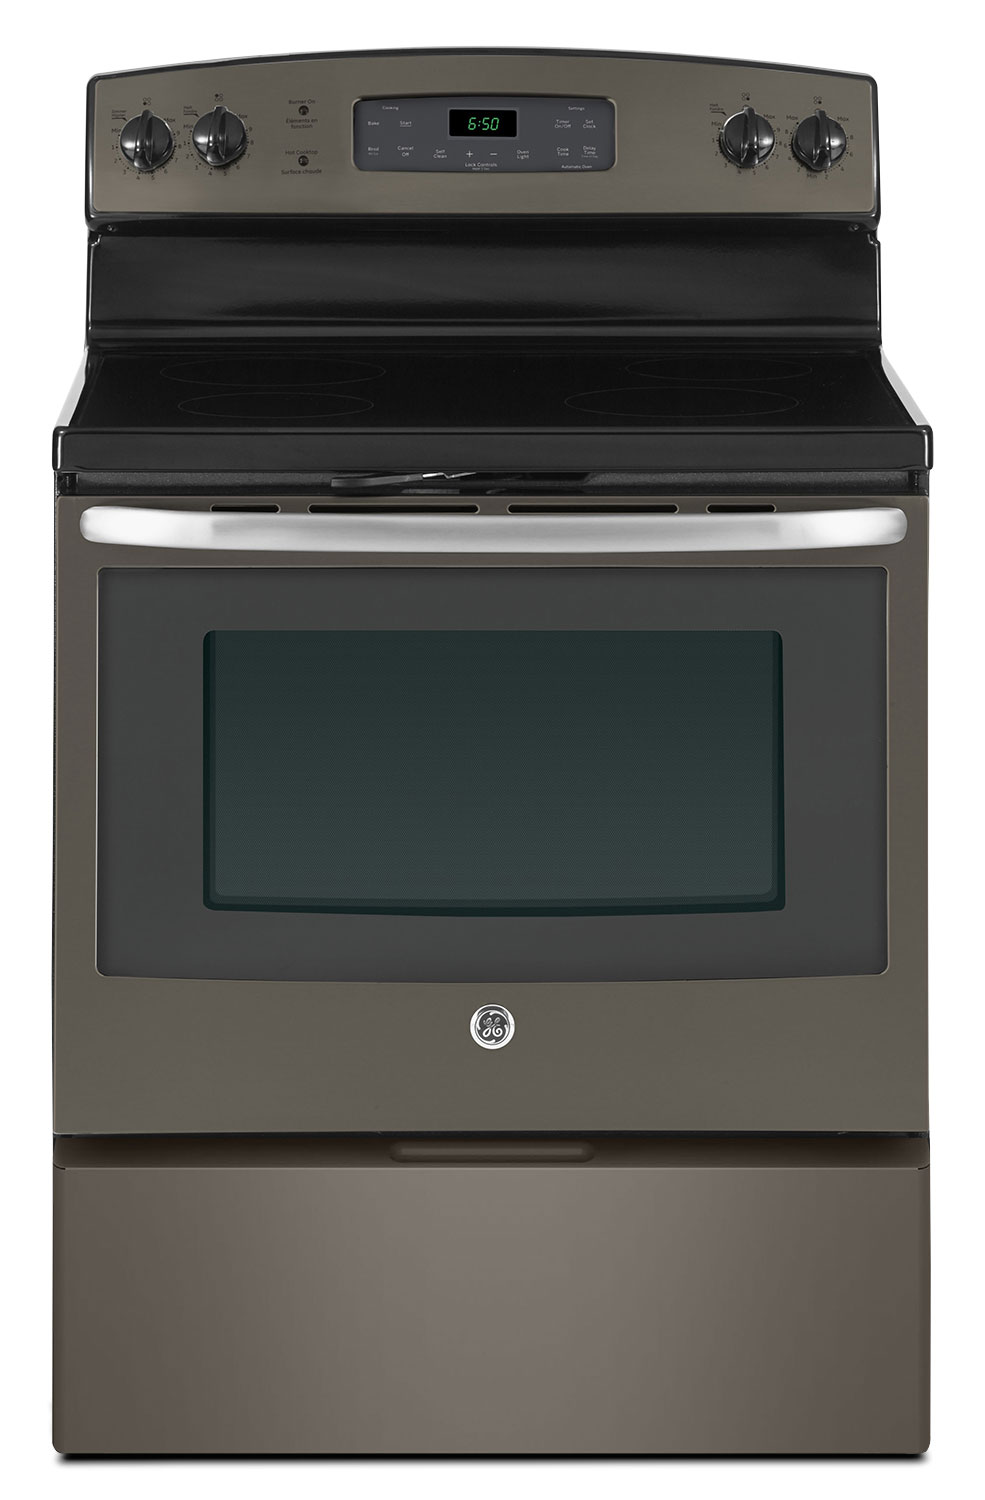 Cooking Products - GE 5.0 Cu. Ft. Freestanding Smooth Top Electric Range - Slate